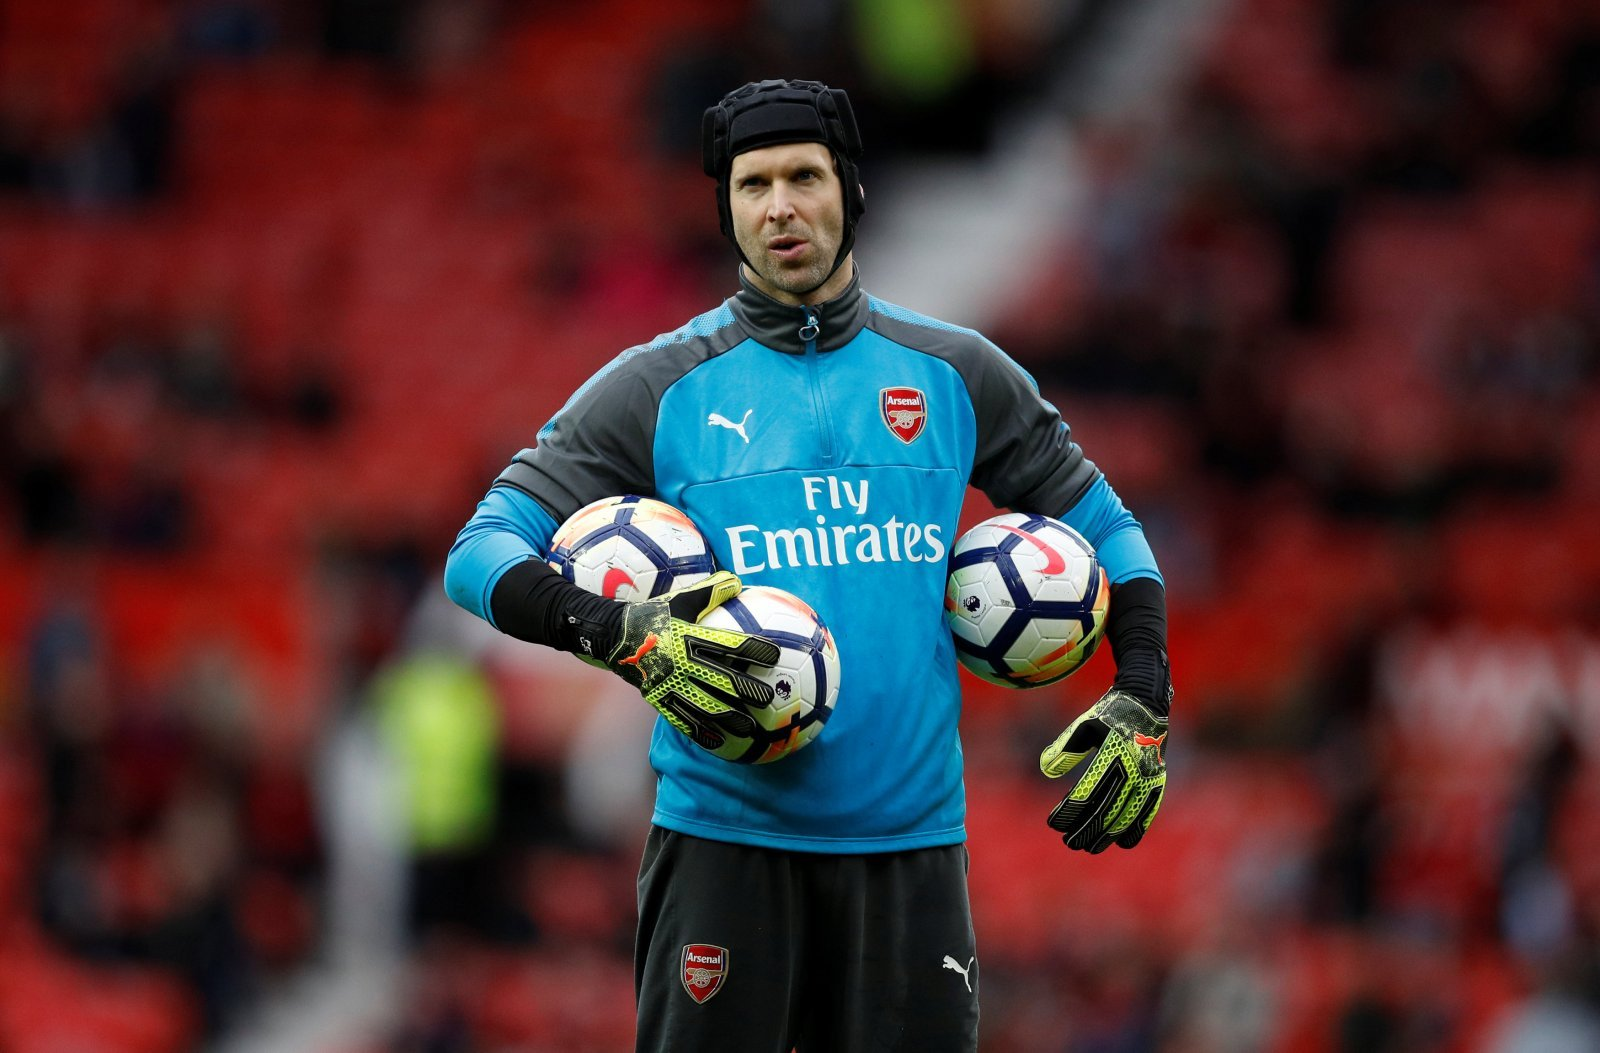 Unai Emery is right to keep Petr Cech in goal against Chelsea